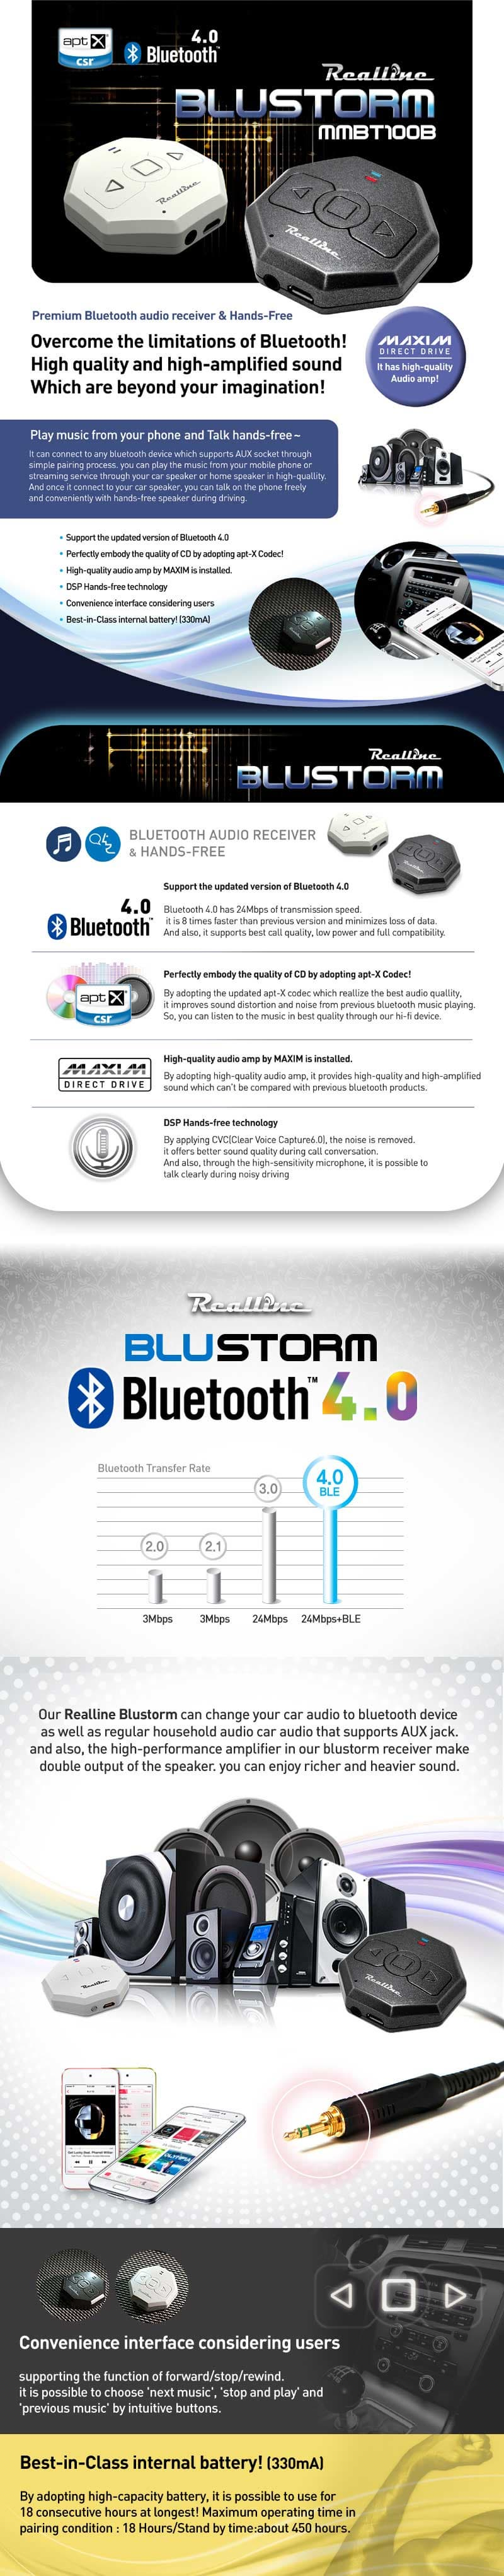 BLUETOOTH AUDIO RECEIVER_REALLINE BLUSTORM